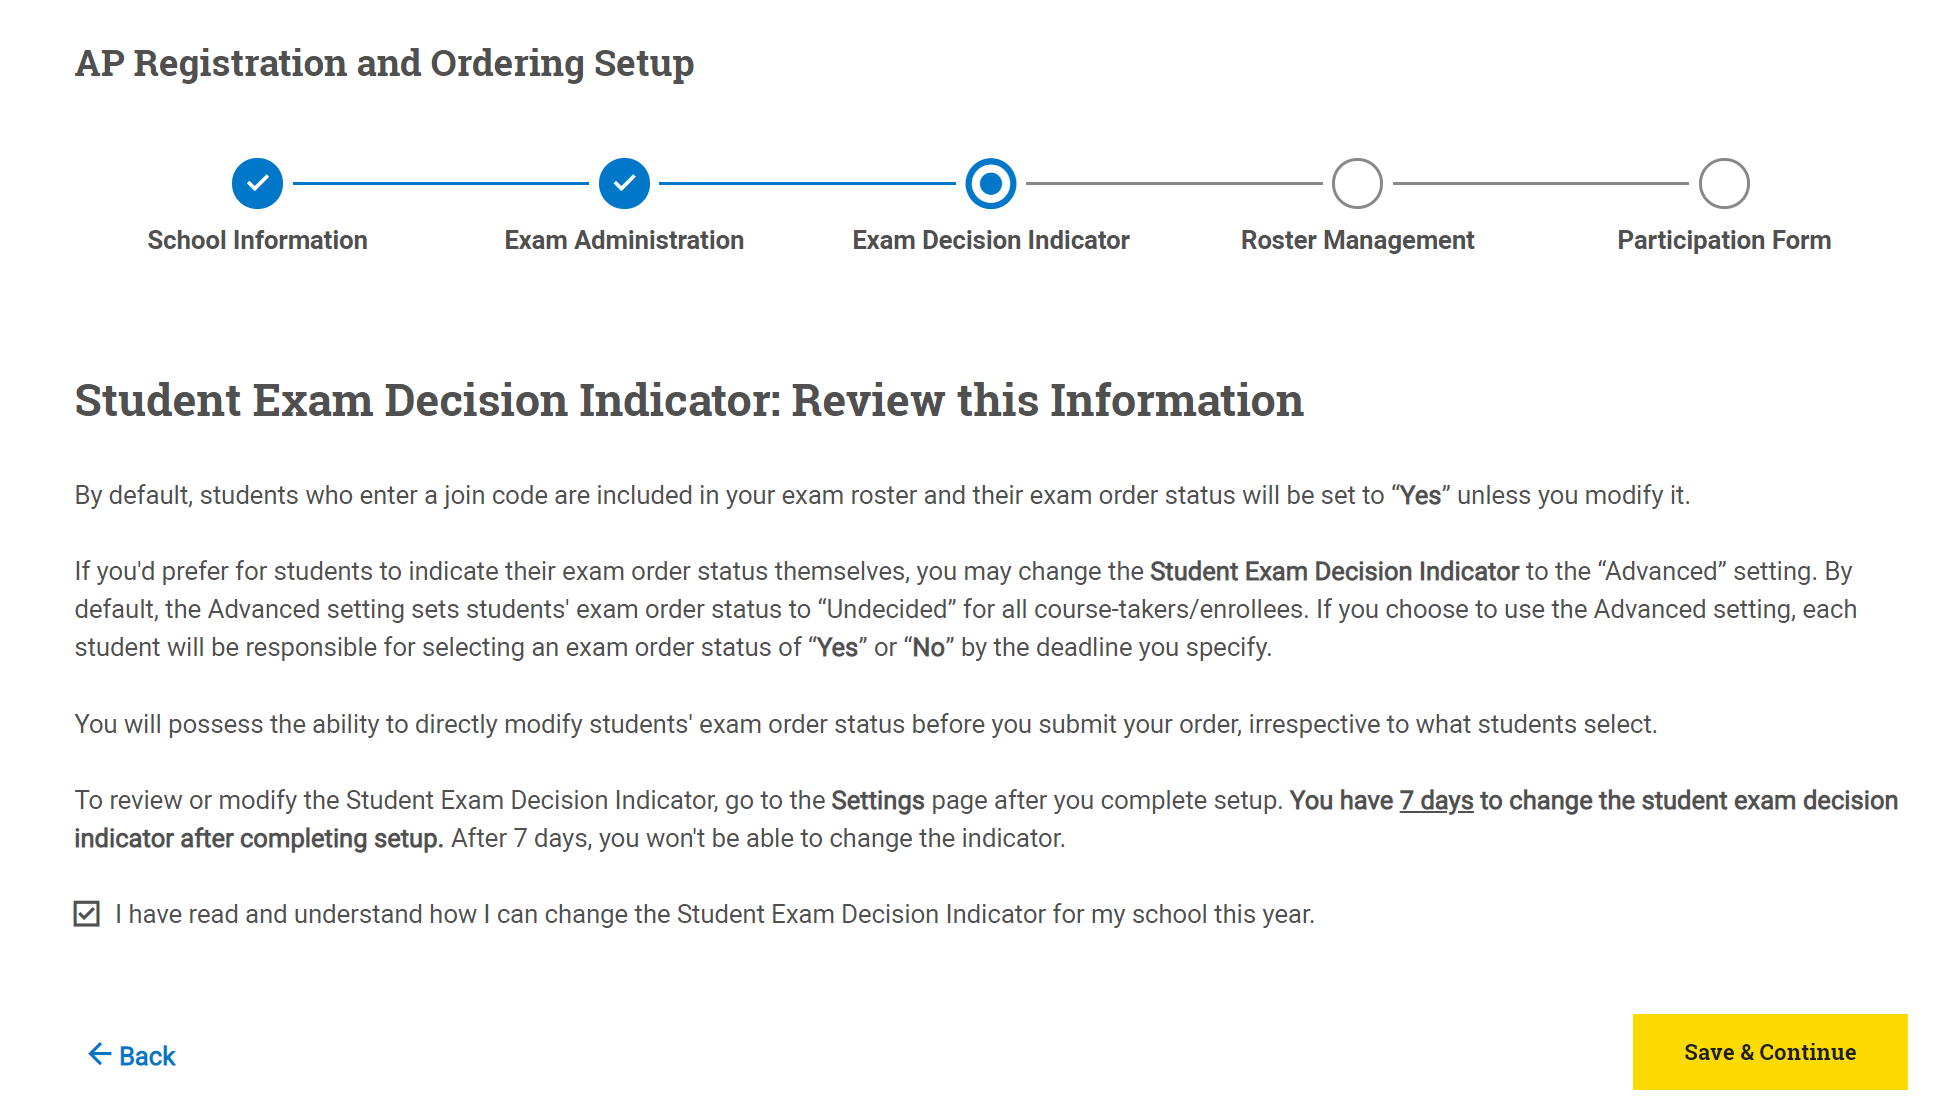 Setup Exam Decision Indicator